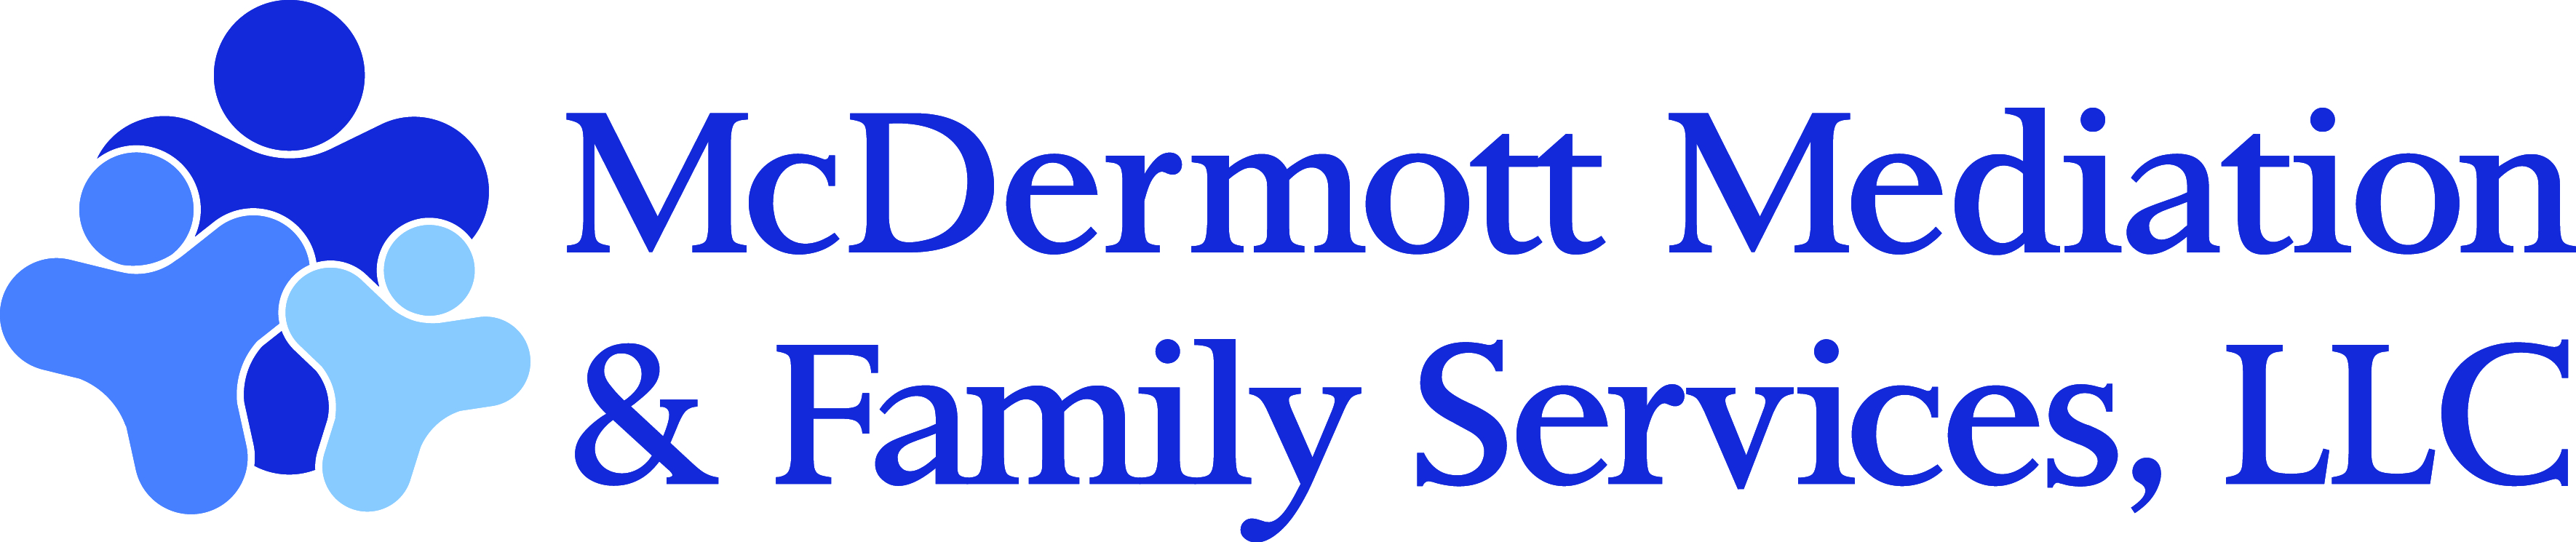 McDermott Mediation and Family Services, LLC